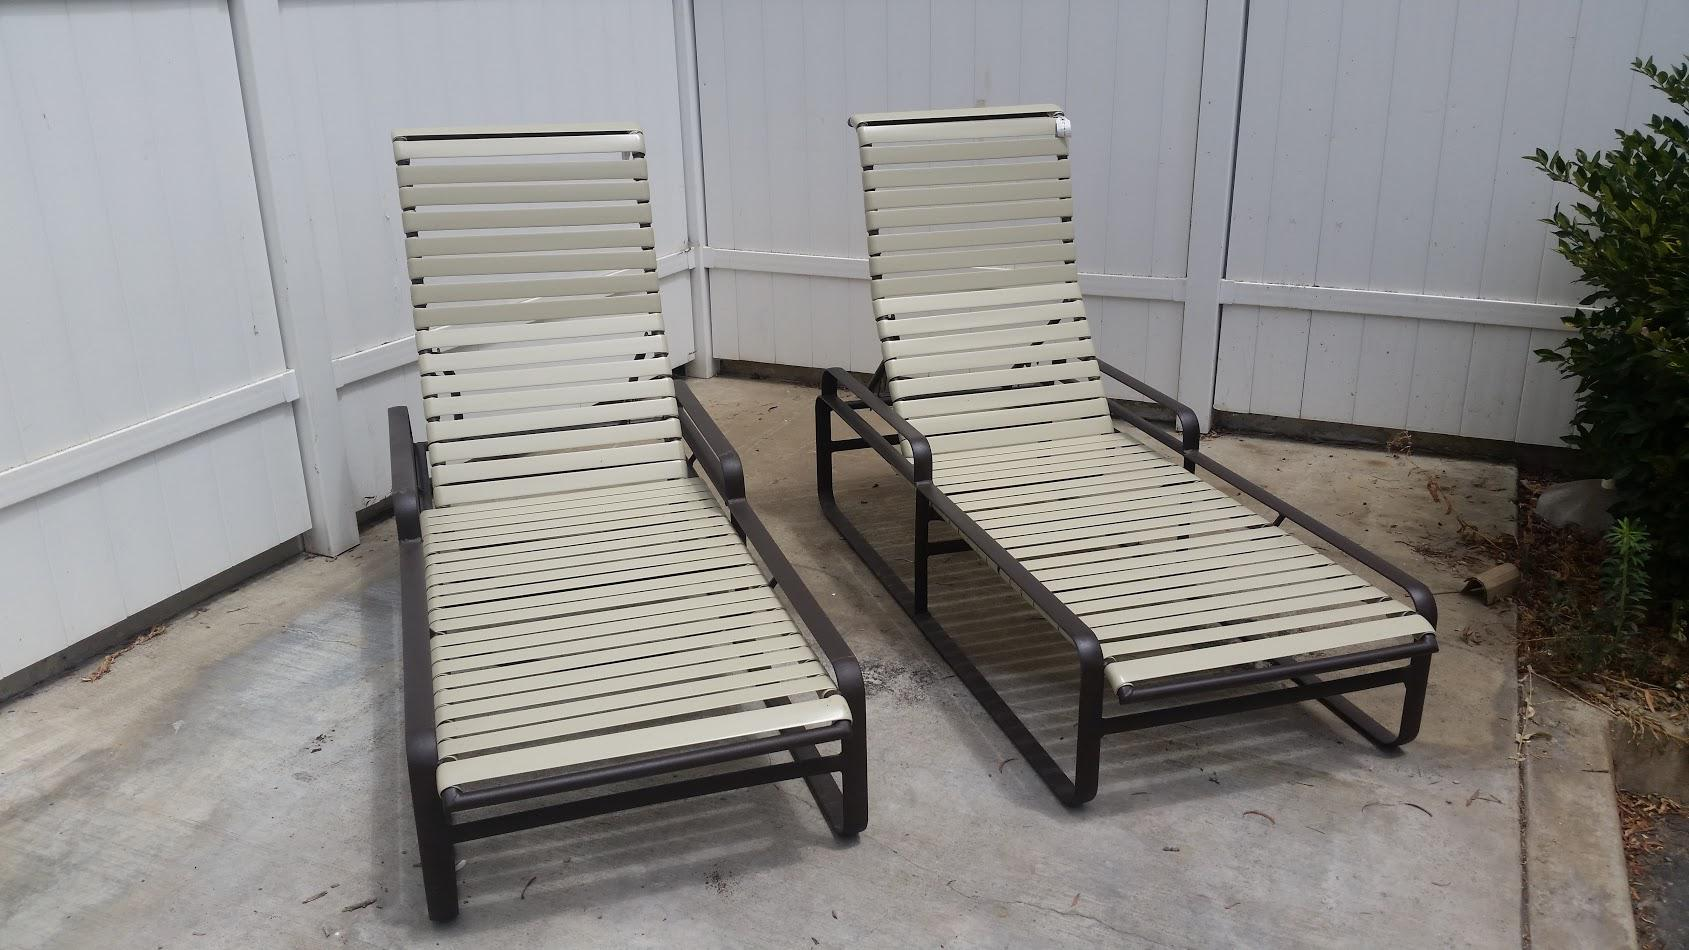 tropitone lounge chairs dream massage chair 1970s brasilia chaise lounges a pair chairish of authentic vintage 1970 s in fair condition powder coated